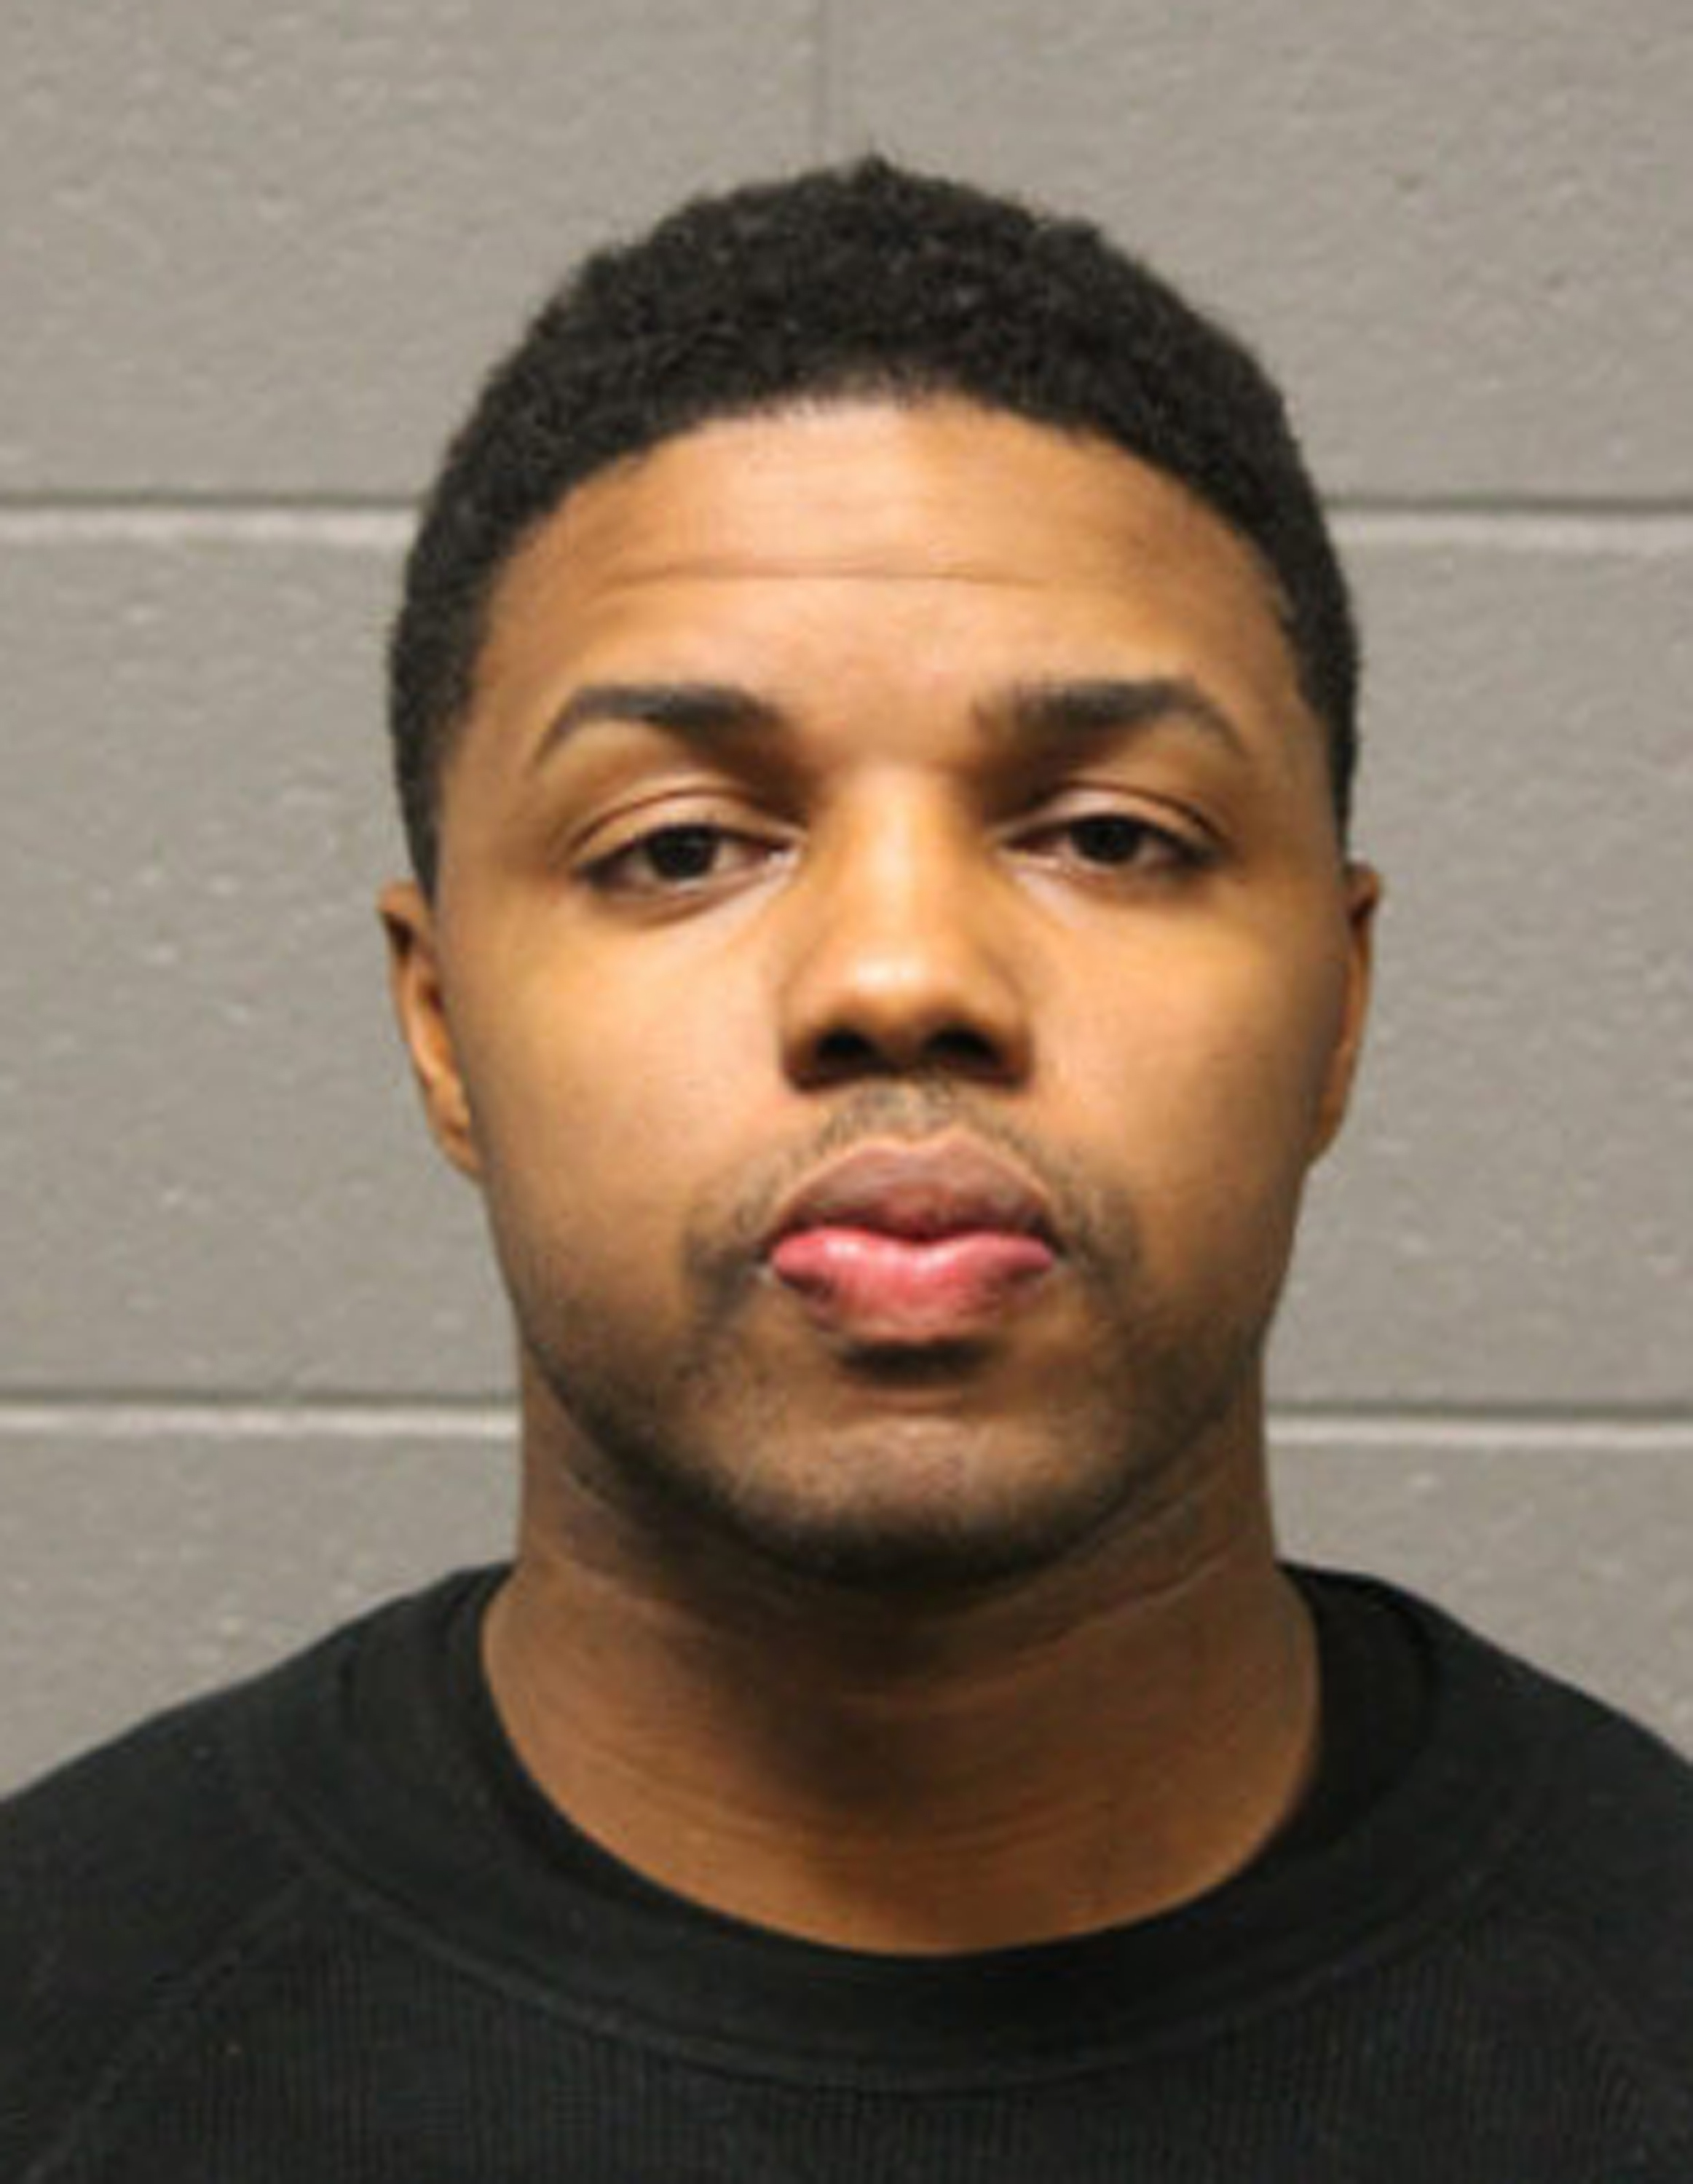 This undated photo provided by the Chicago Police Department shows LaRoyce Tankson. Prosecutors have charged Tankson, an Amtrak police officer, with first-degree murder in the shooting death of a Minneapolis man, Chad Robertson, outside Chicago's Union Station. (Chicago Police Department via AP).